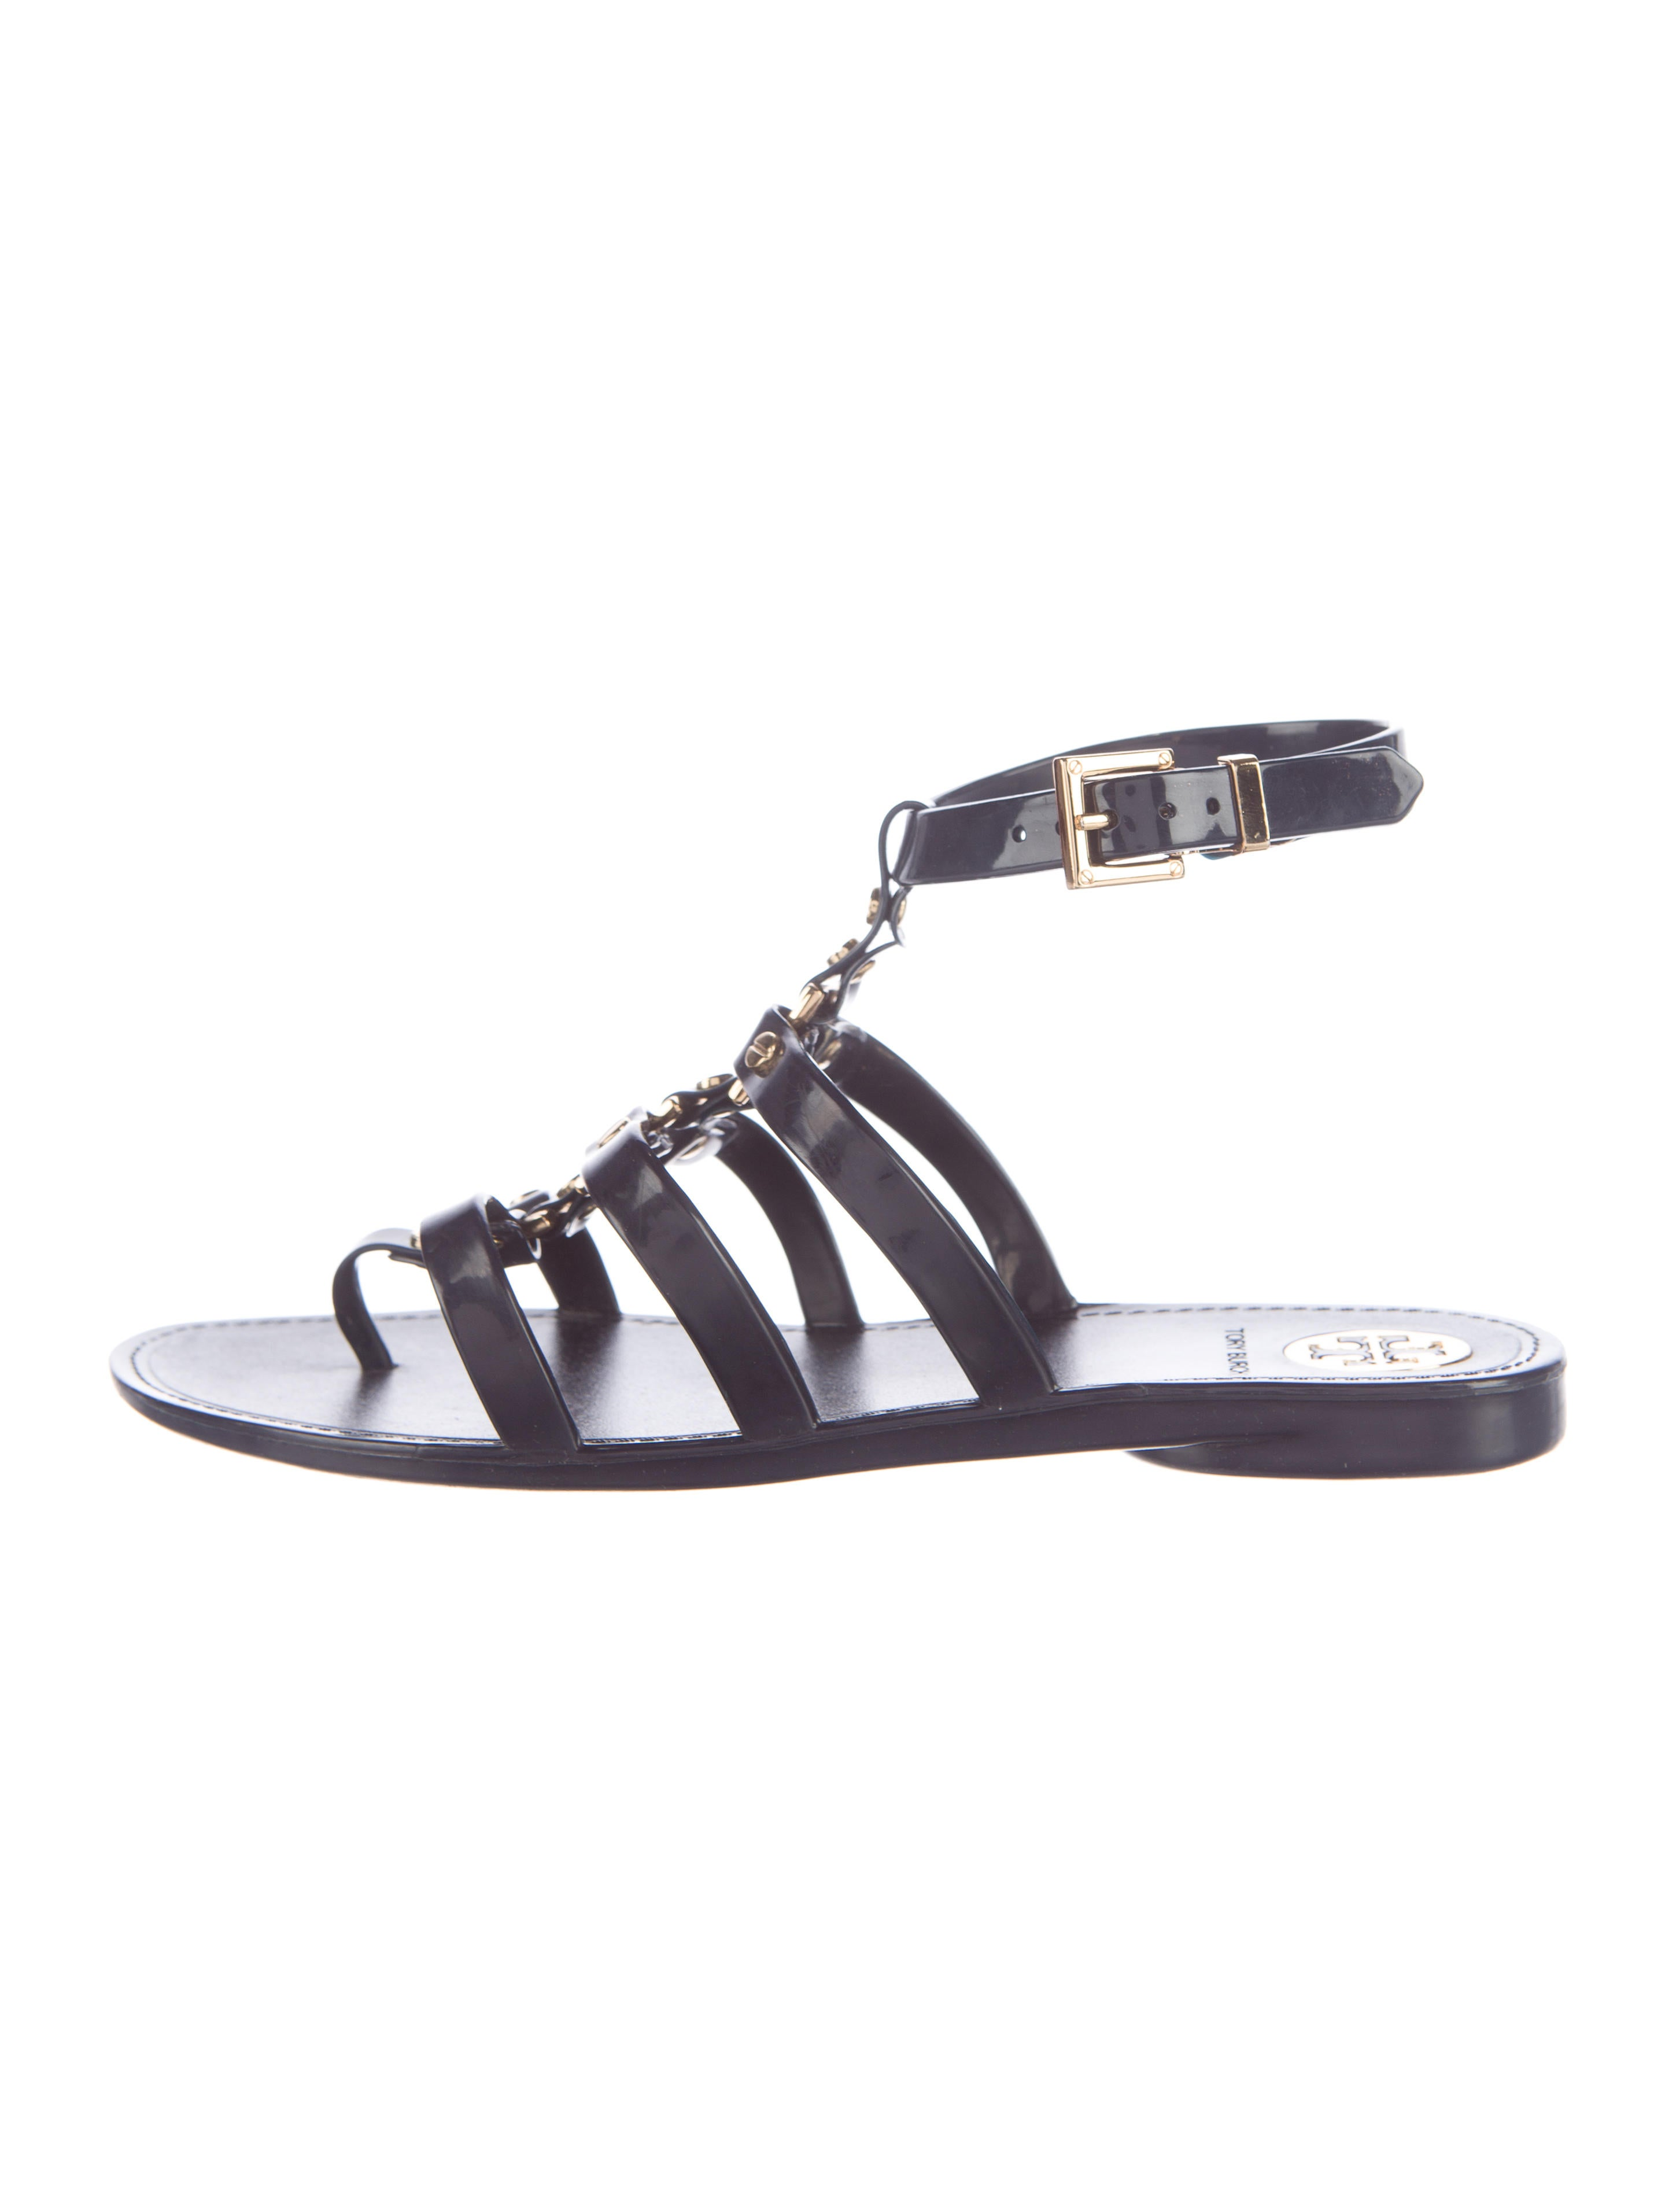 791cffe490a Tory Burch Patent Leather Gladiator Sandals - Shoes - WTO92009